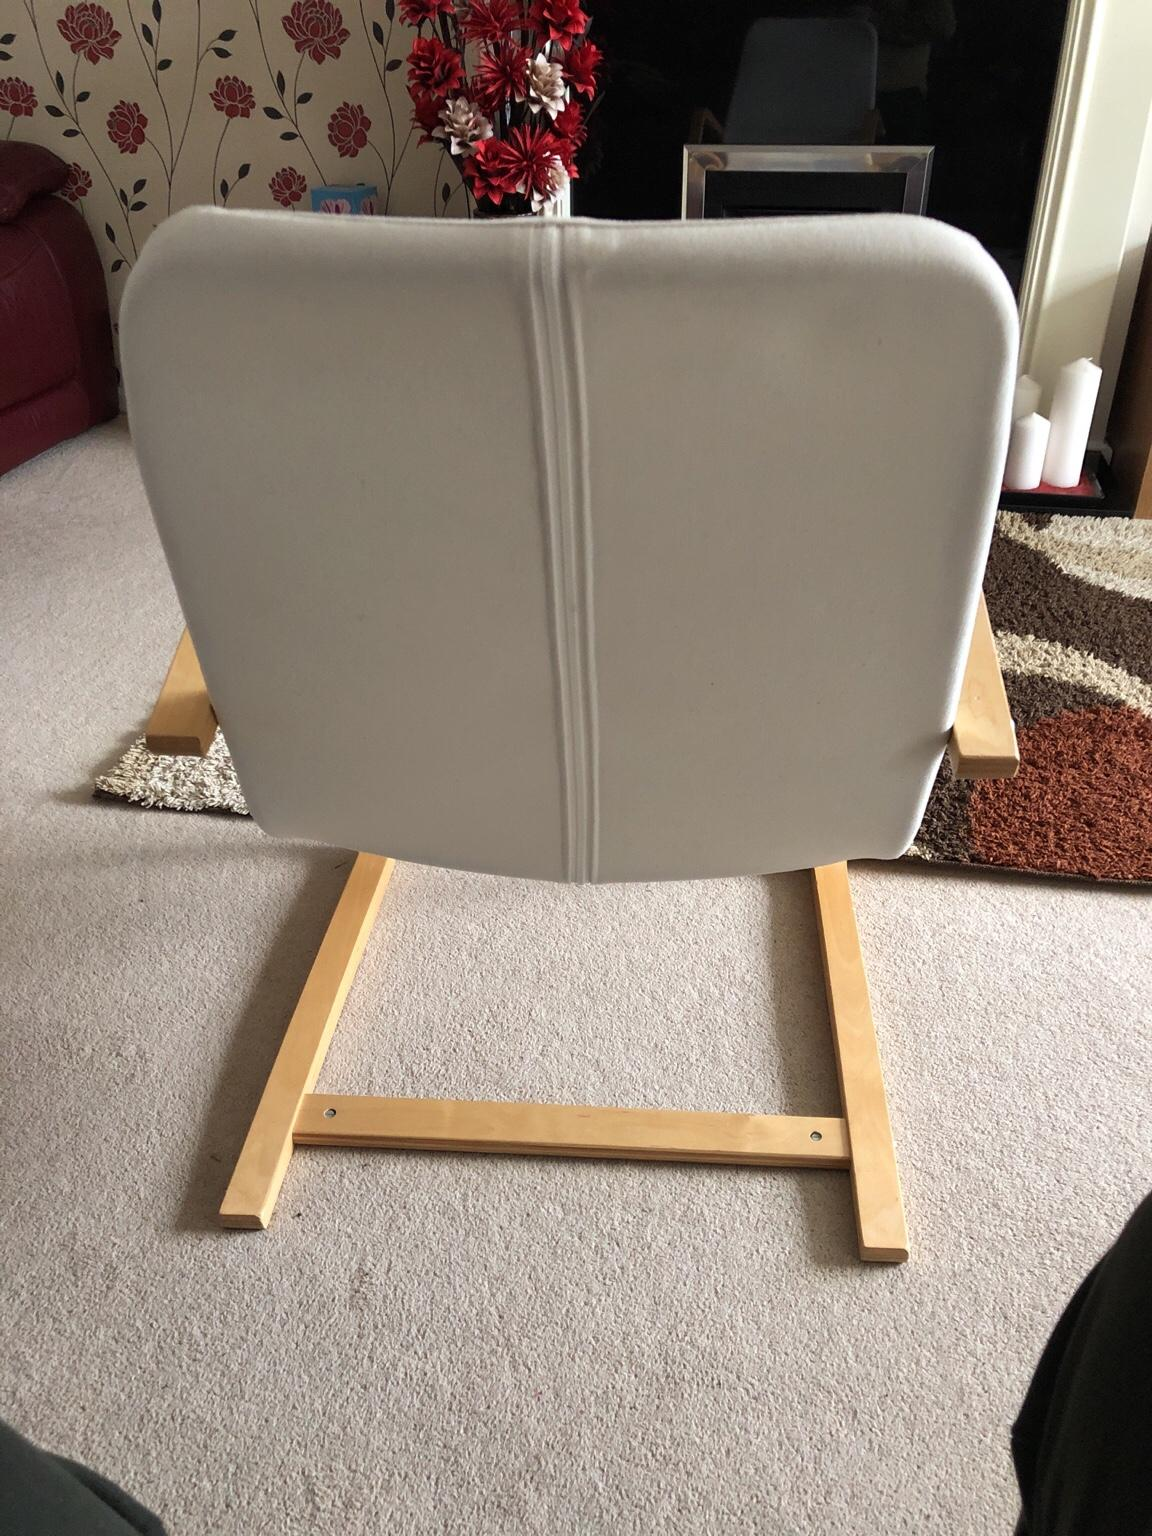 Ikea cantilever chair in S75 Barnsley